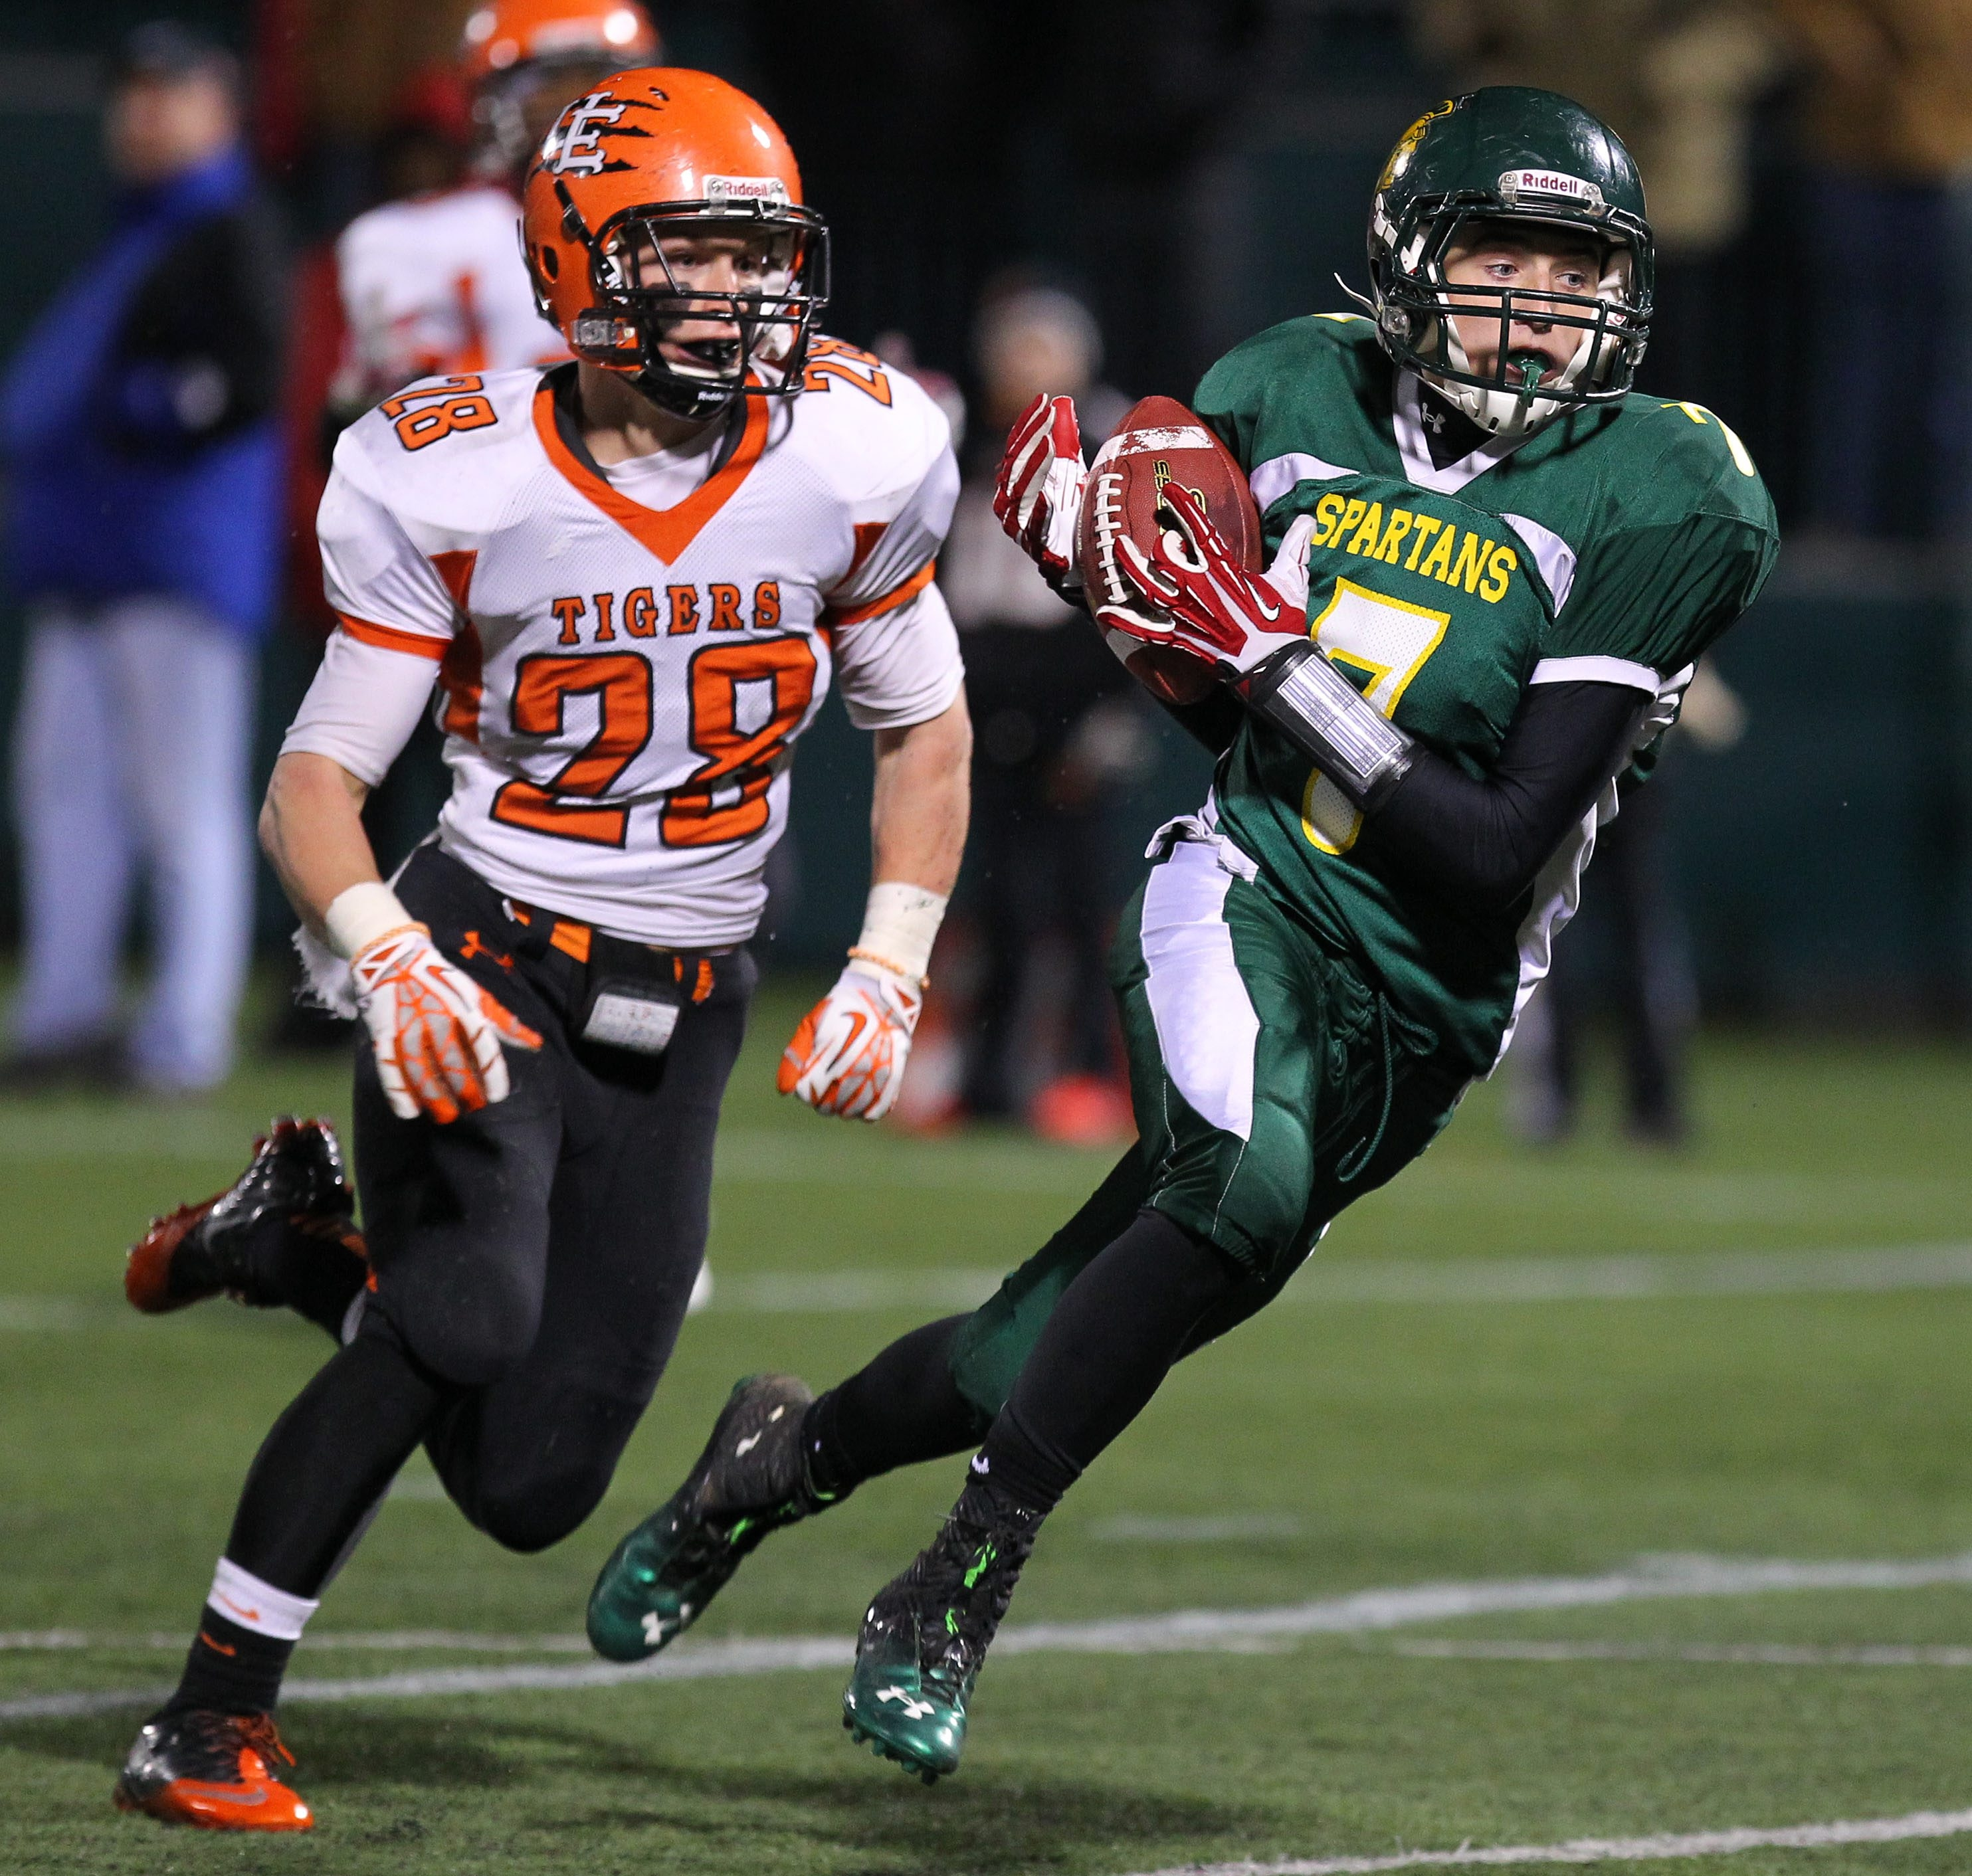 Zac Kelly makes a touchdown catch ahead of Union-Endicott's Drew Hogan during Williamsville North's 27-14 victory last week in the Class A state semifinals.